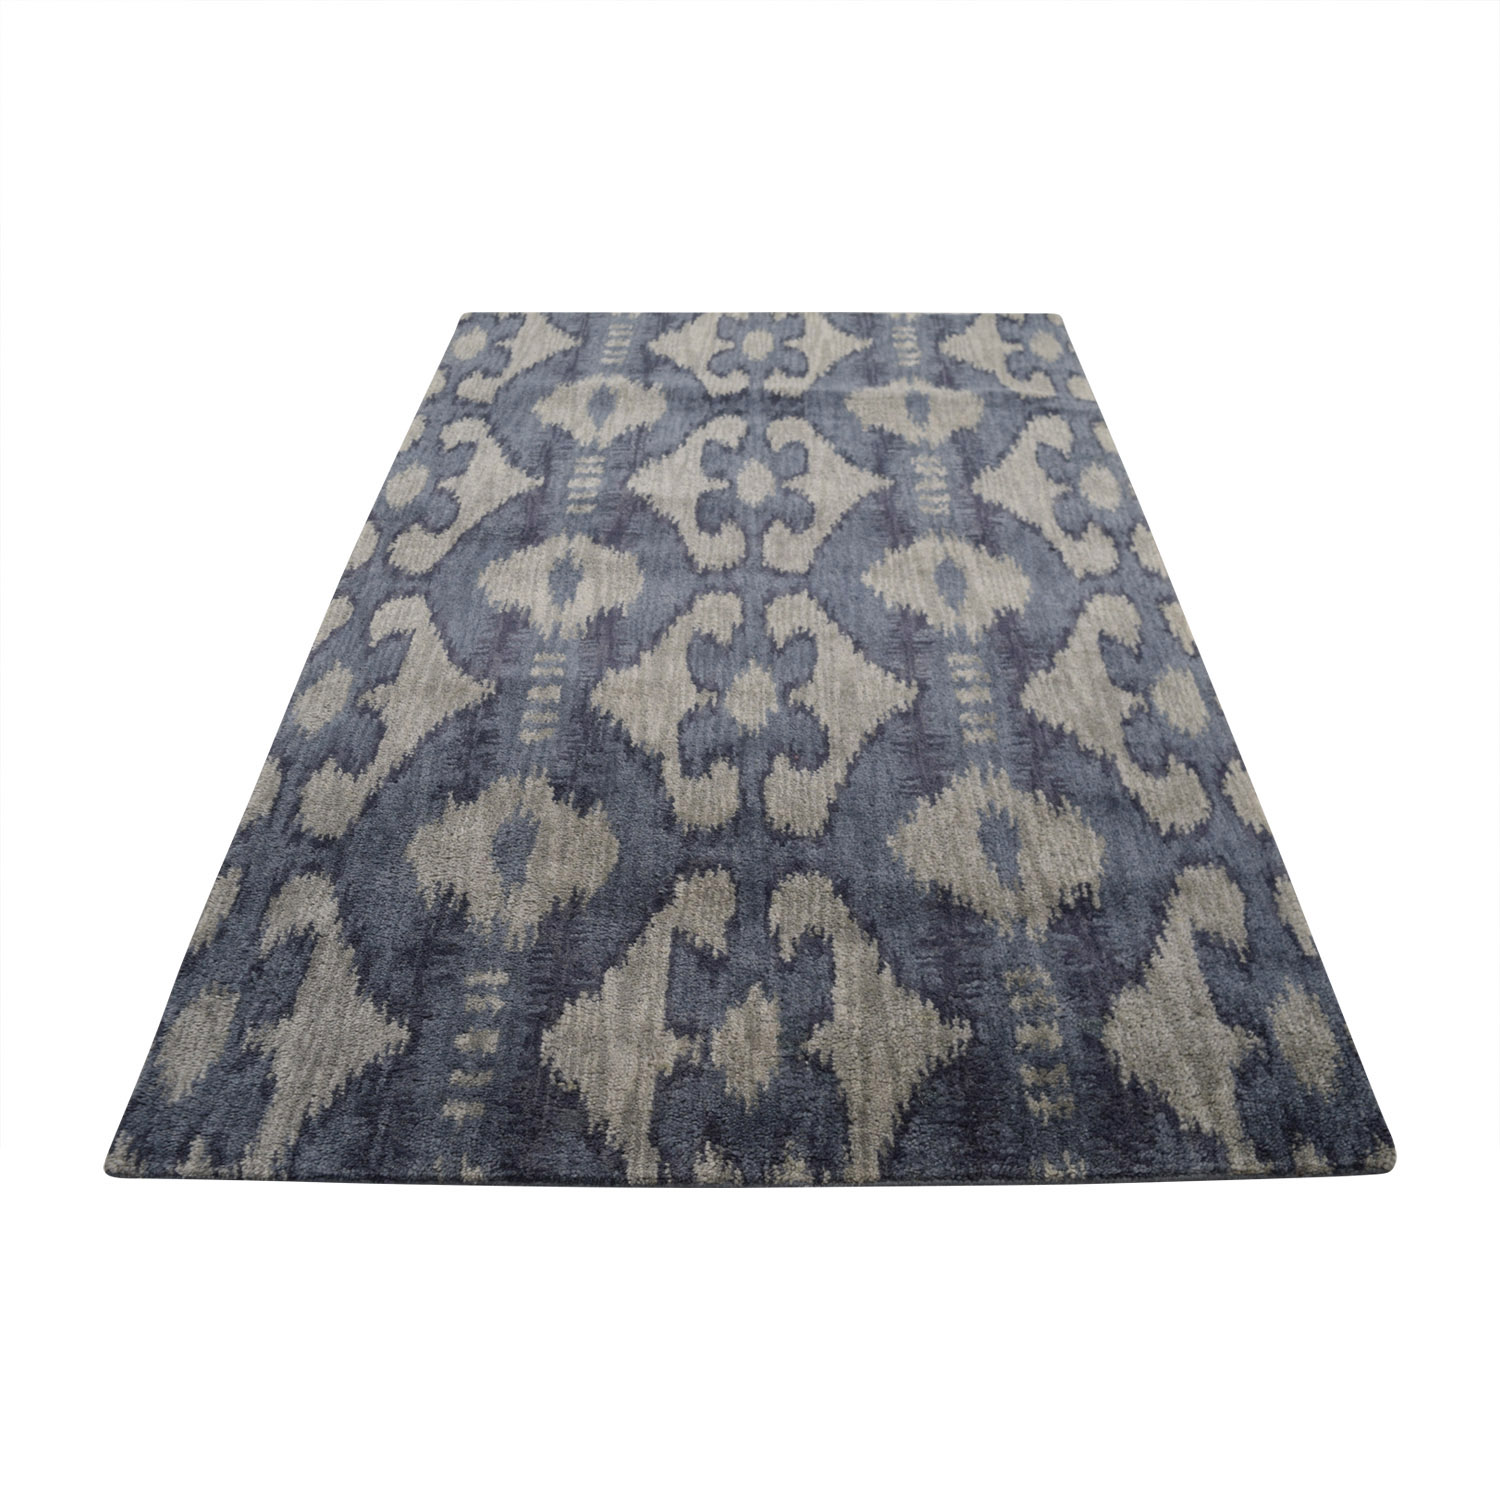 shop Obeetee Obeetee Hand Tufted Grey and Blue Rug online